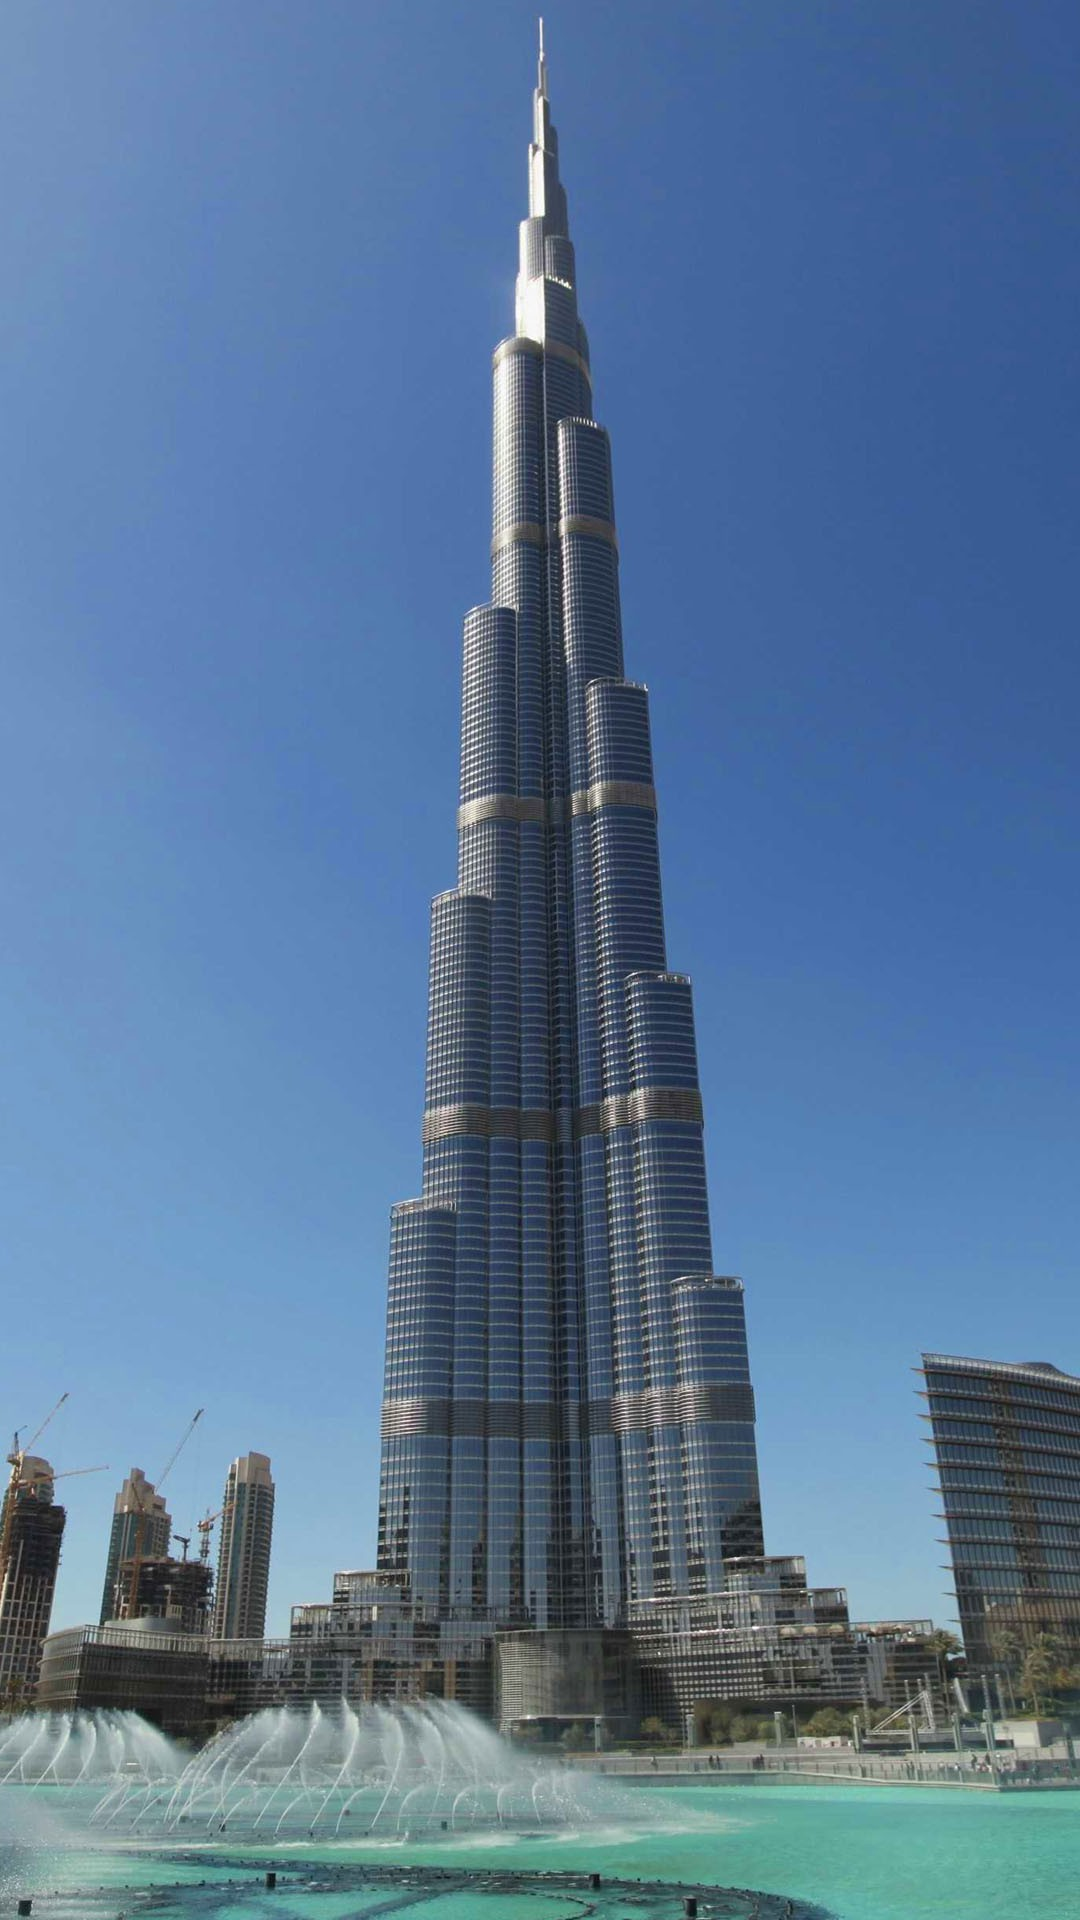 Toppest Mussalla  in the World at <br/>160th Floor, Burj Khalifa.